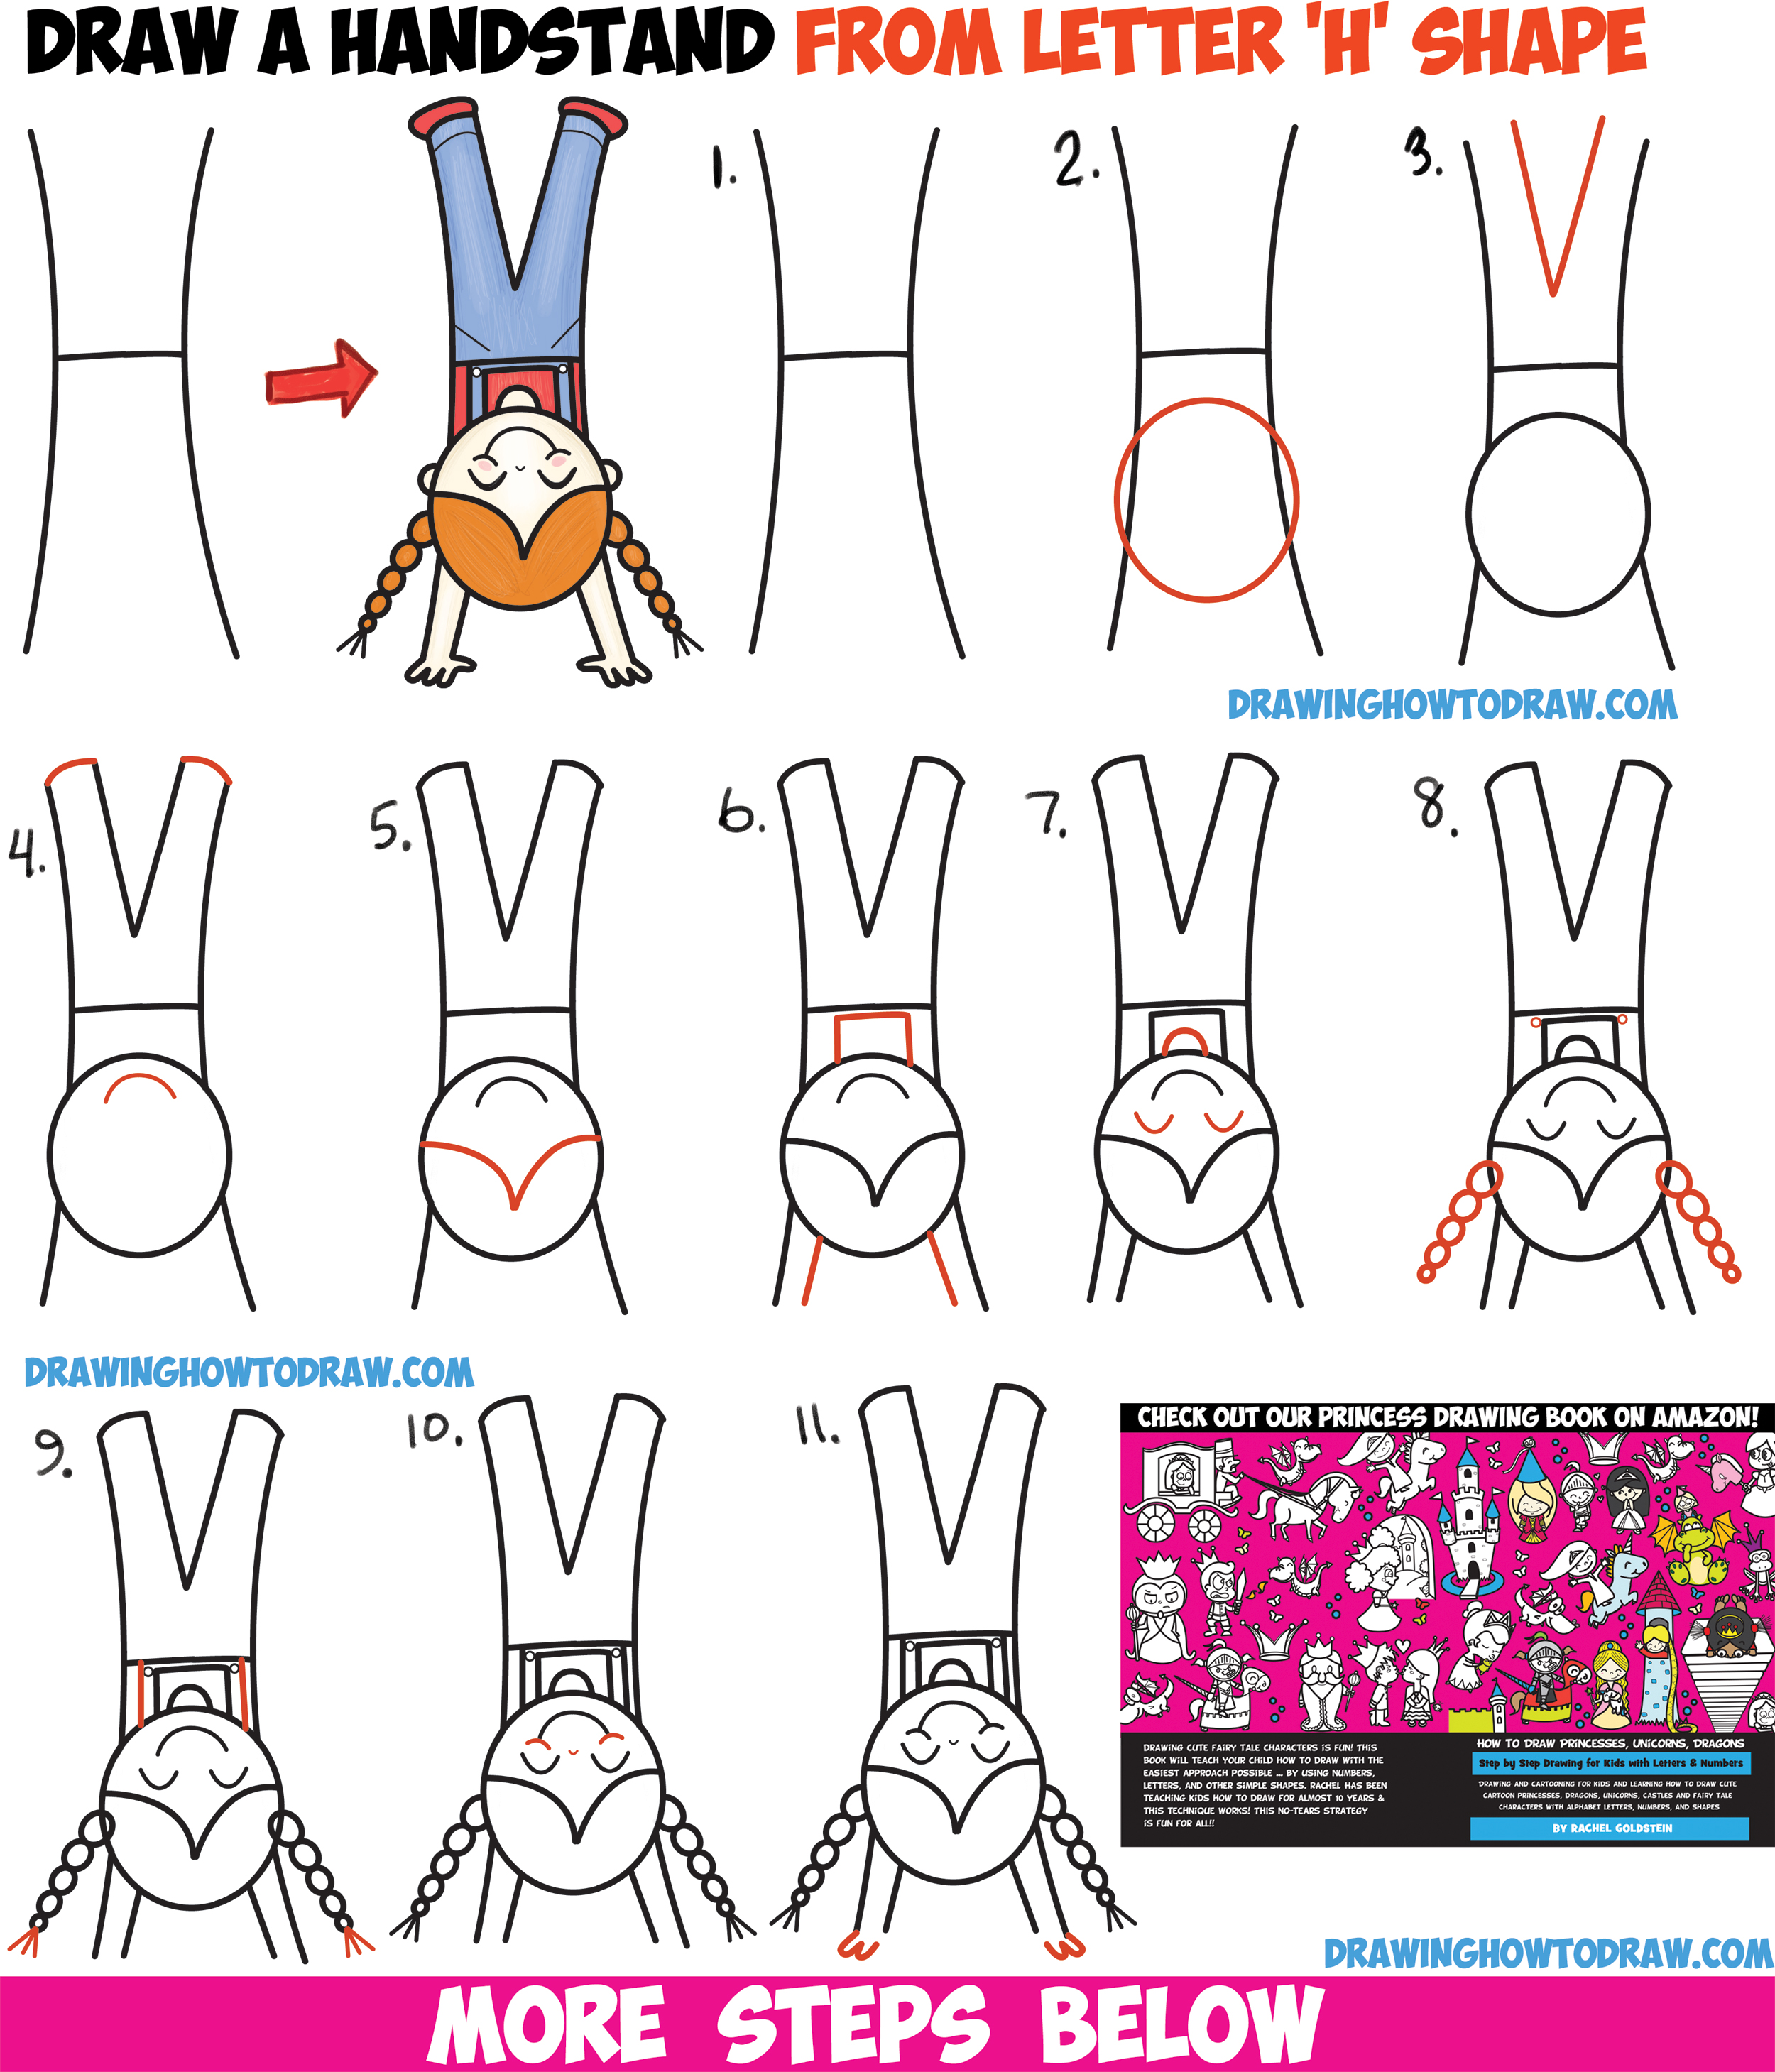 How To Draw A Cute Cartoon Kawaii Girl Doing A Handstand From The Letter